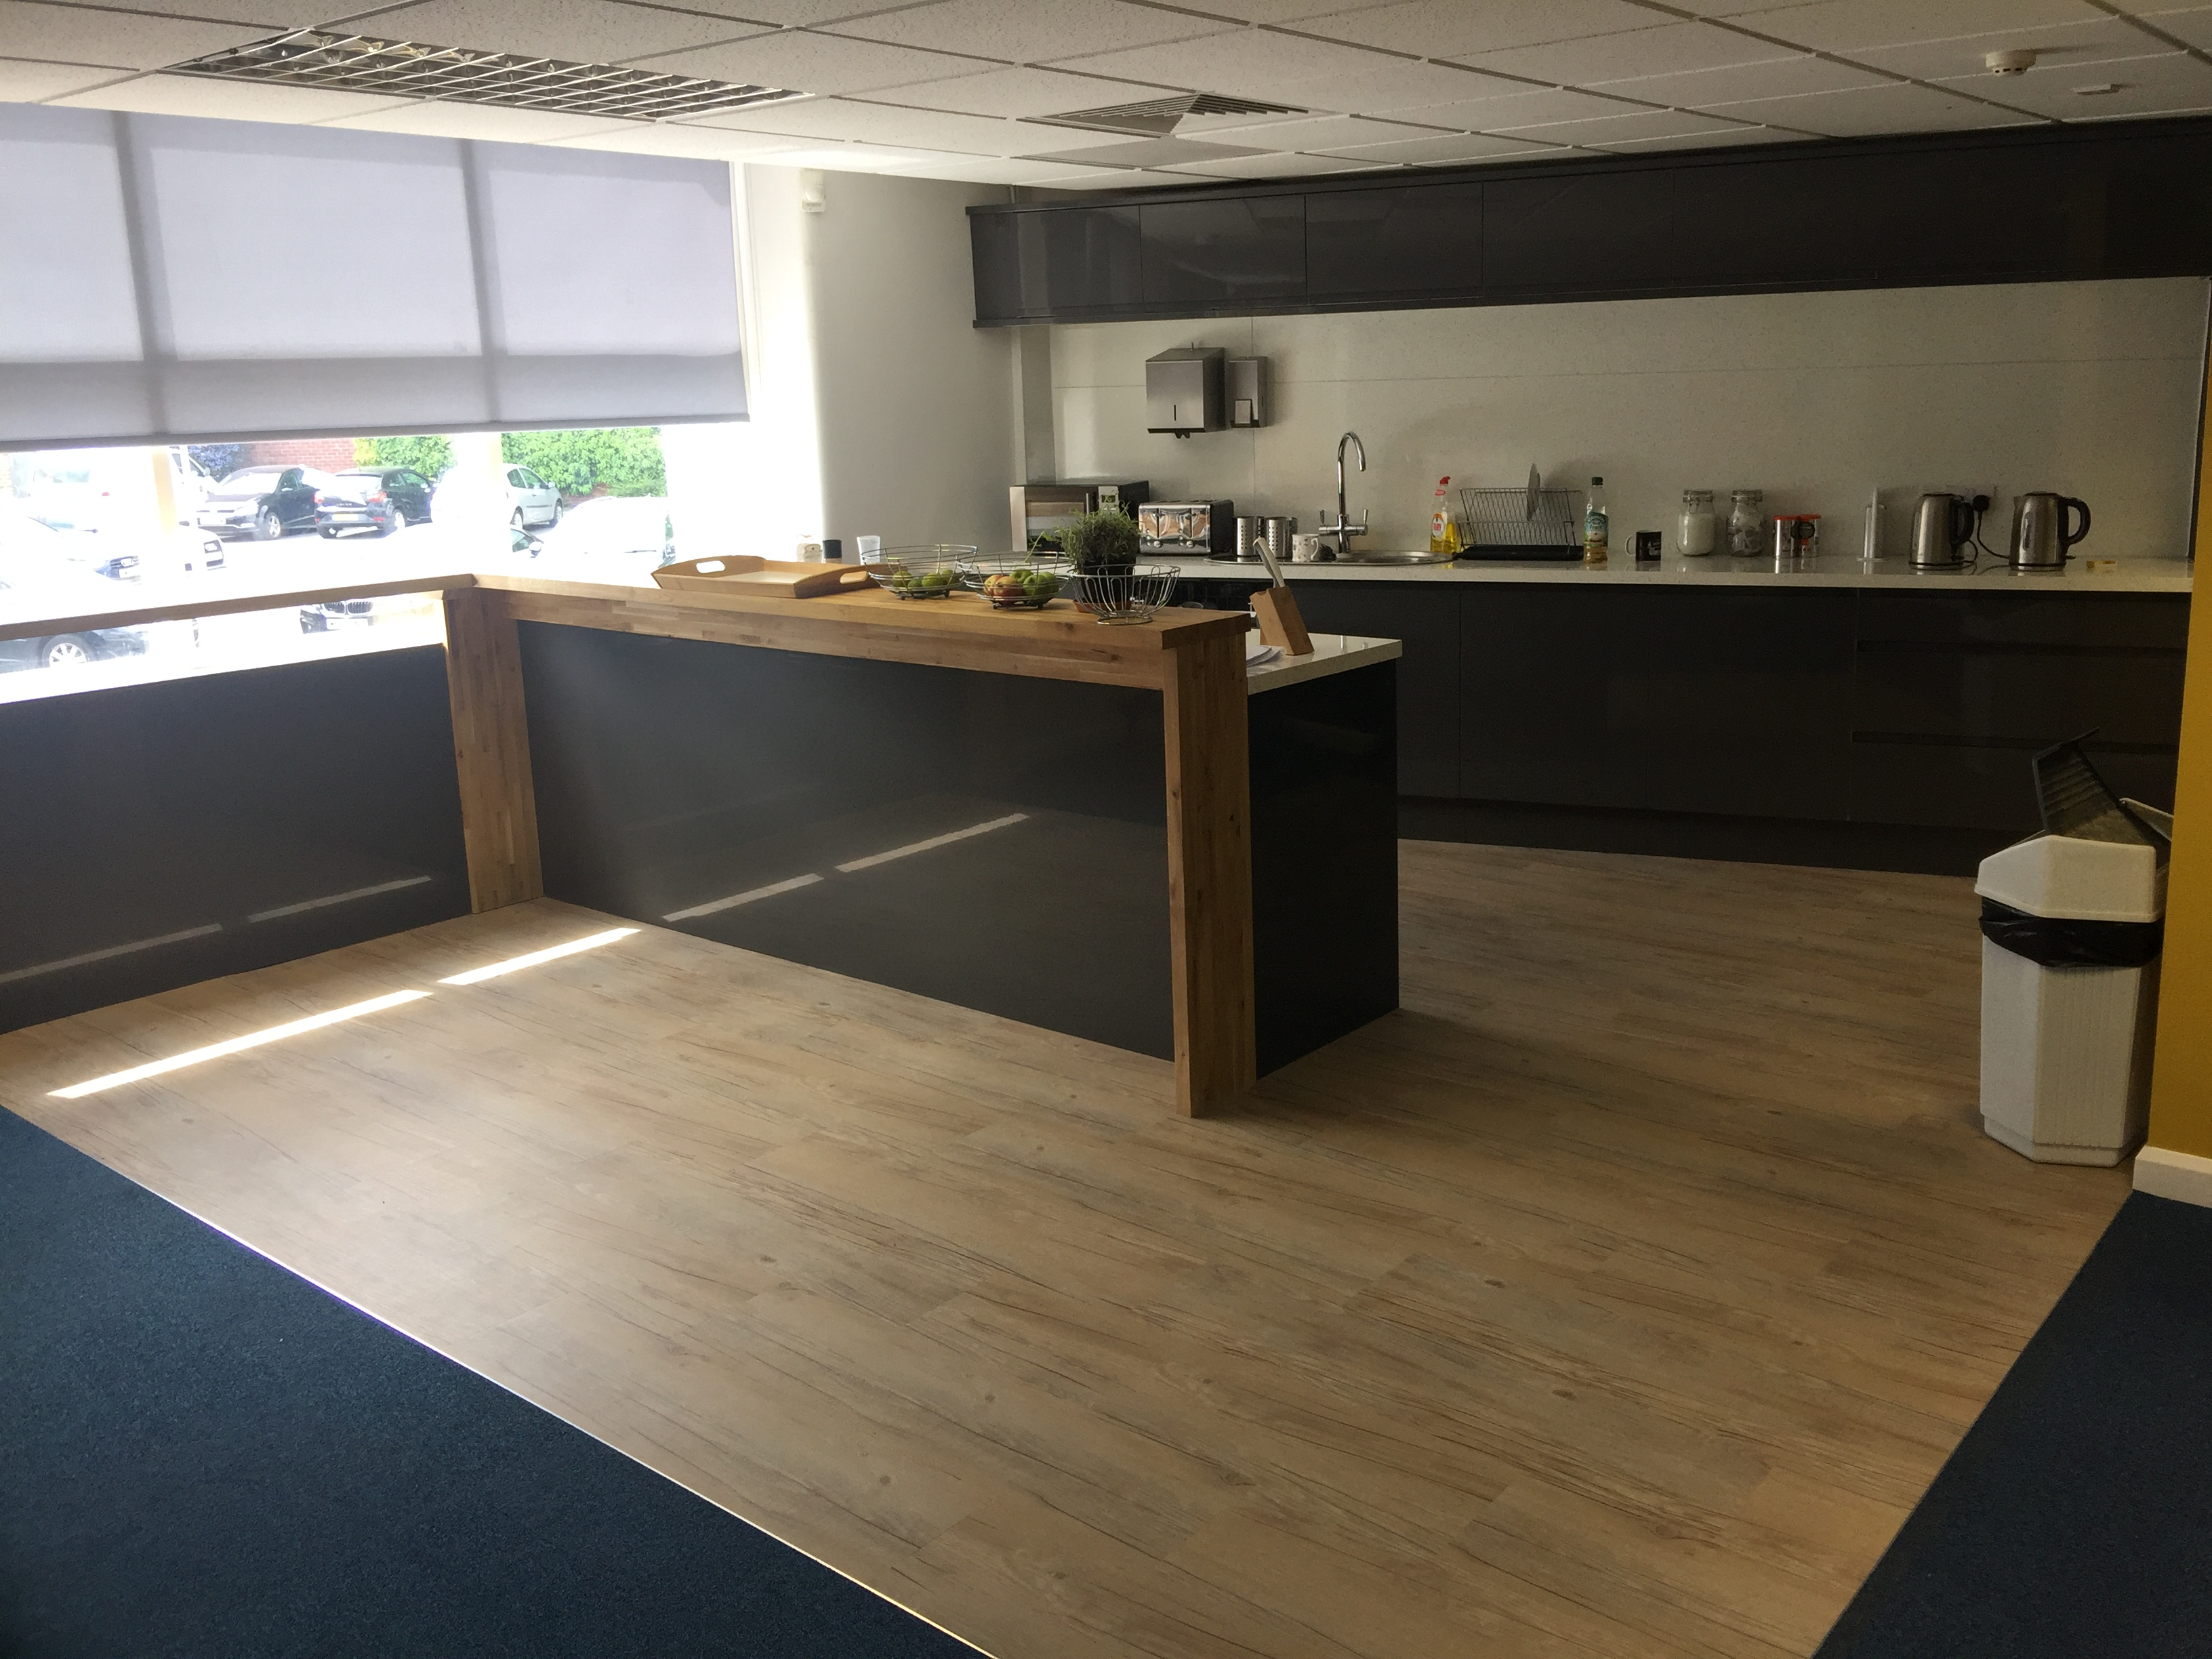 New flooring from A Cumberlidge after Perkbox expand and move to new premises